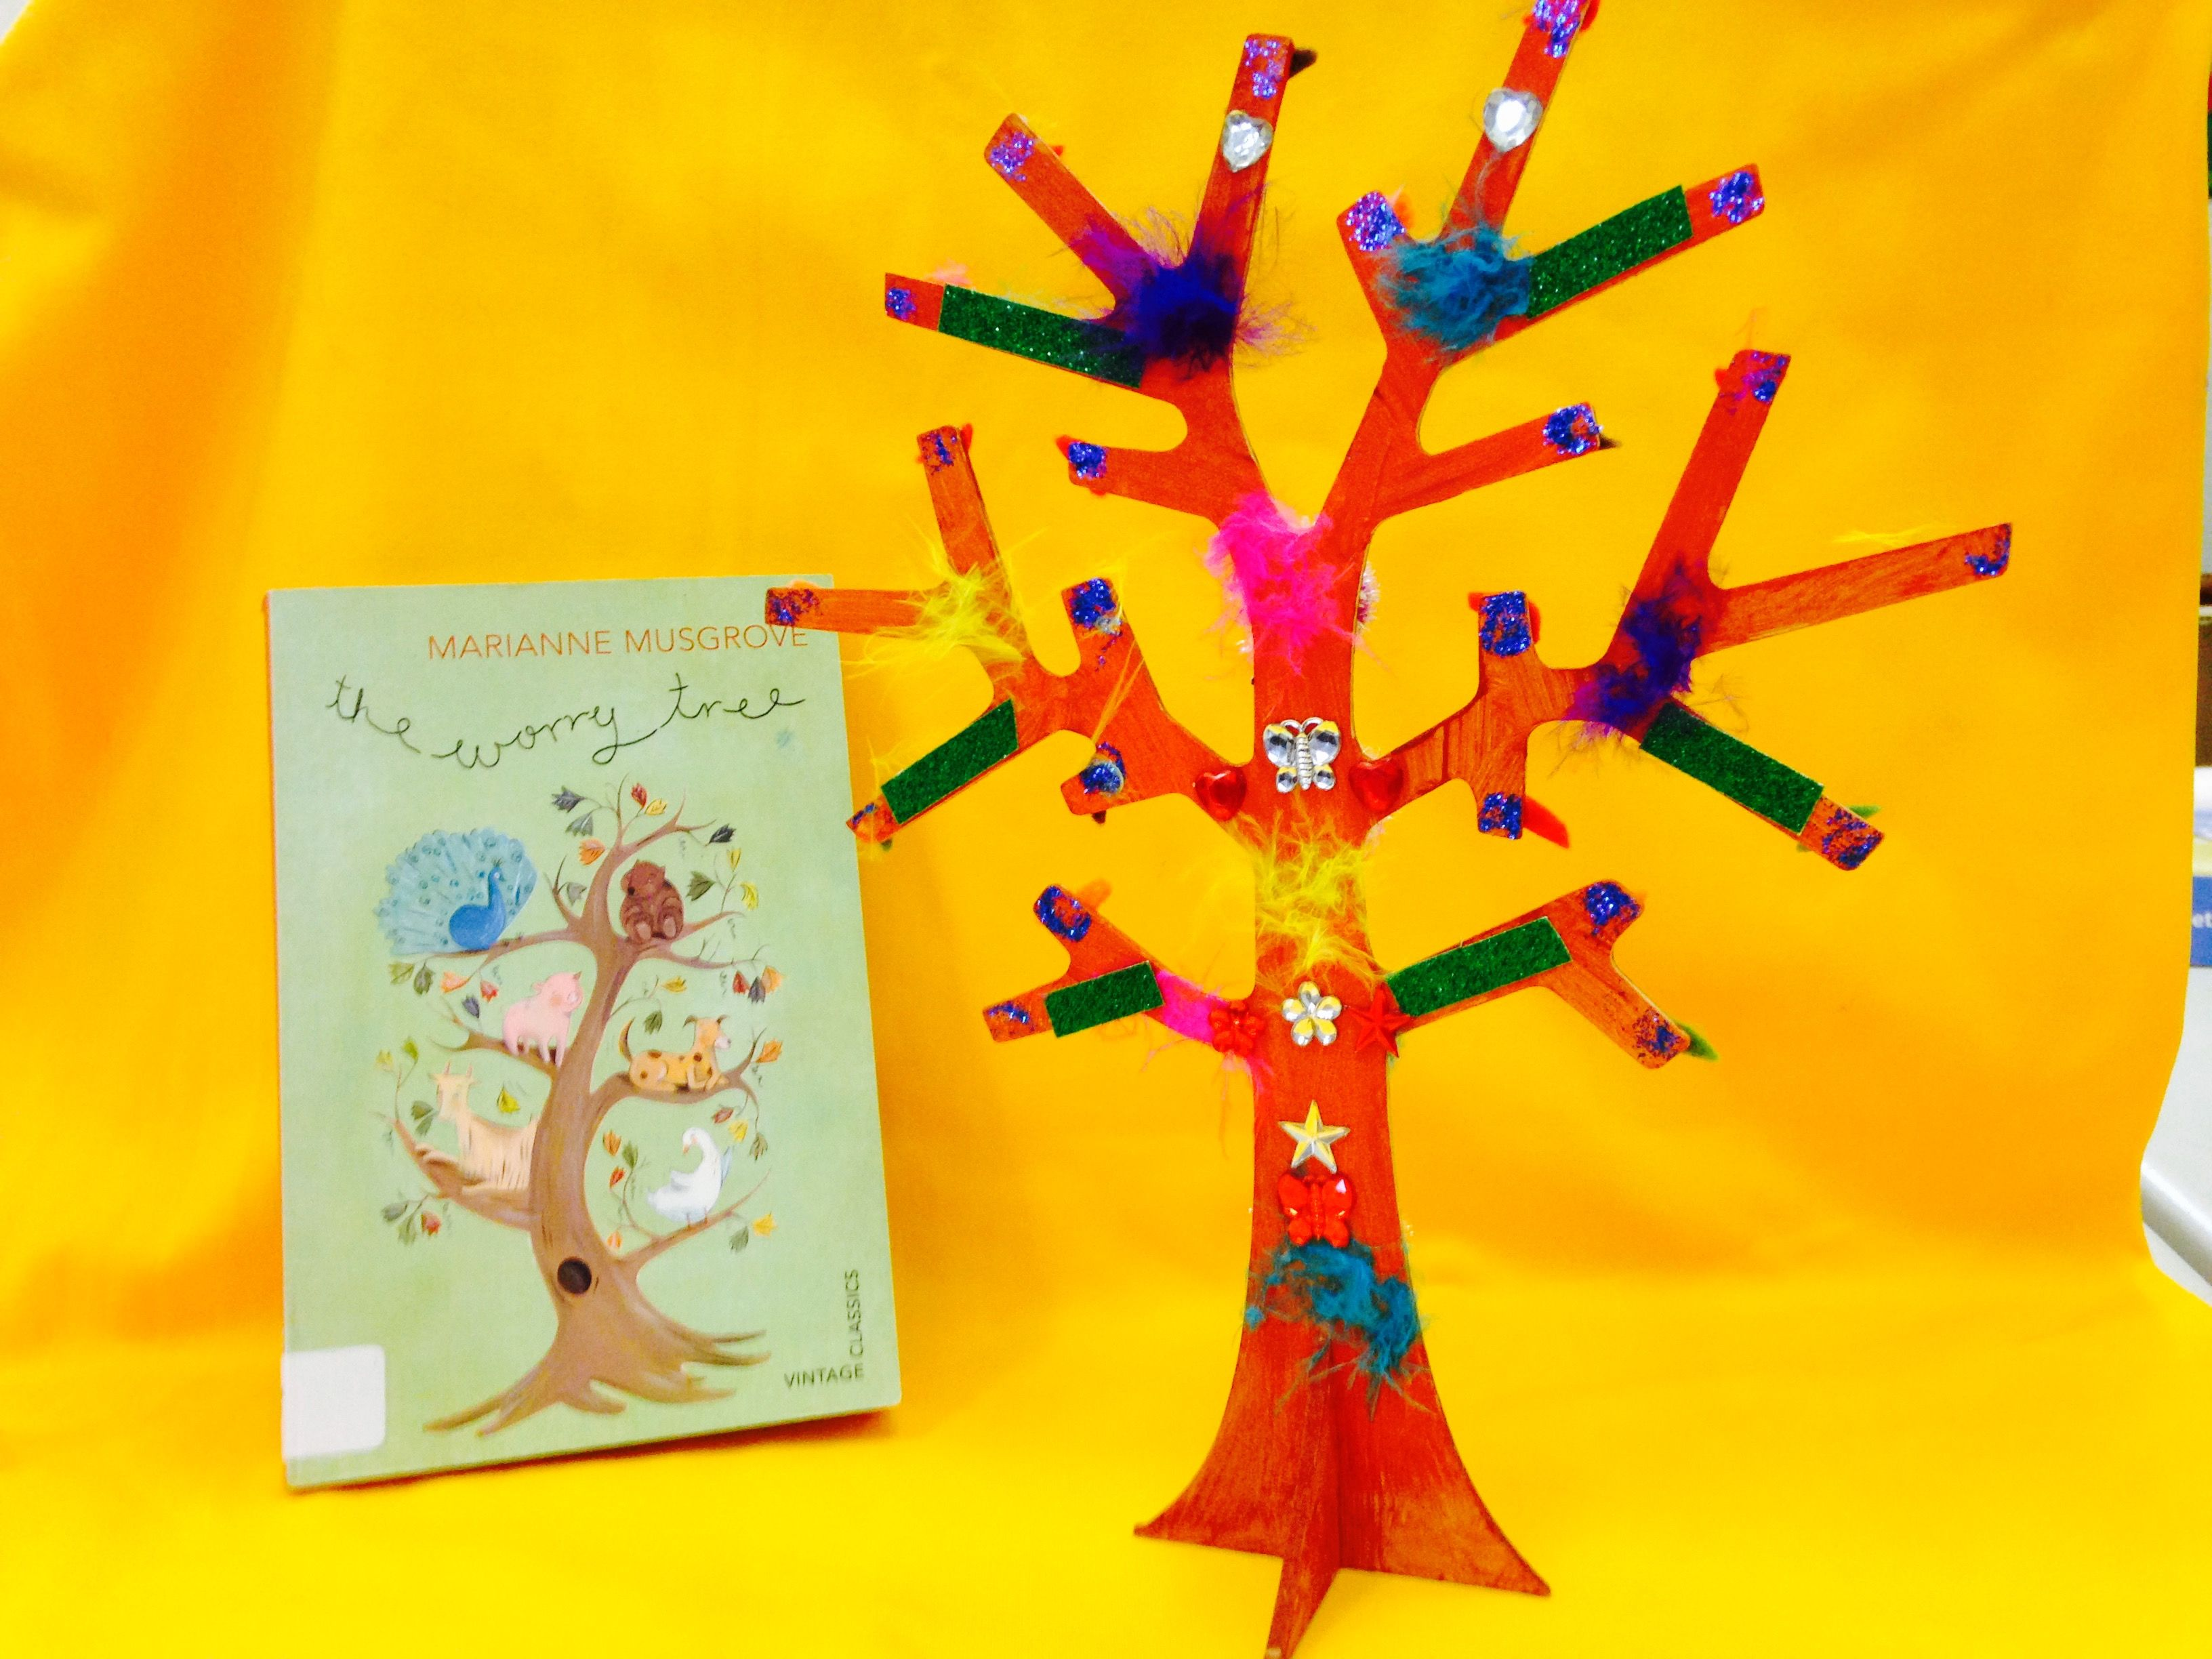 the worry tree musgrove marianne